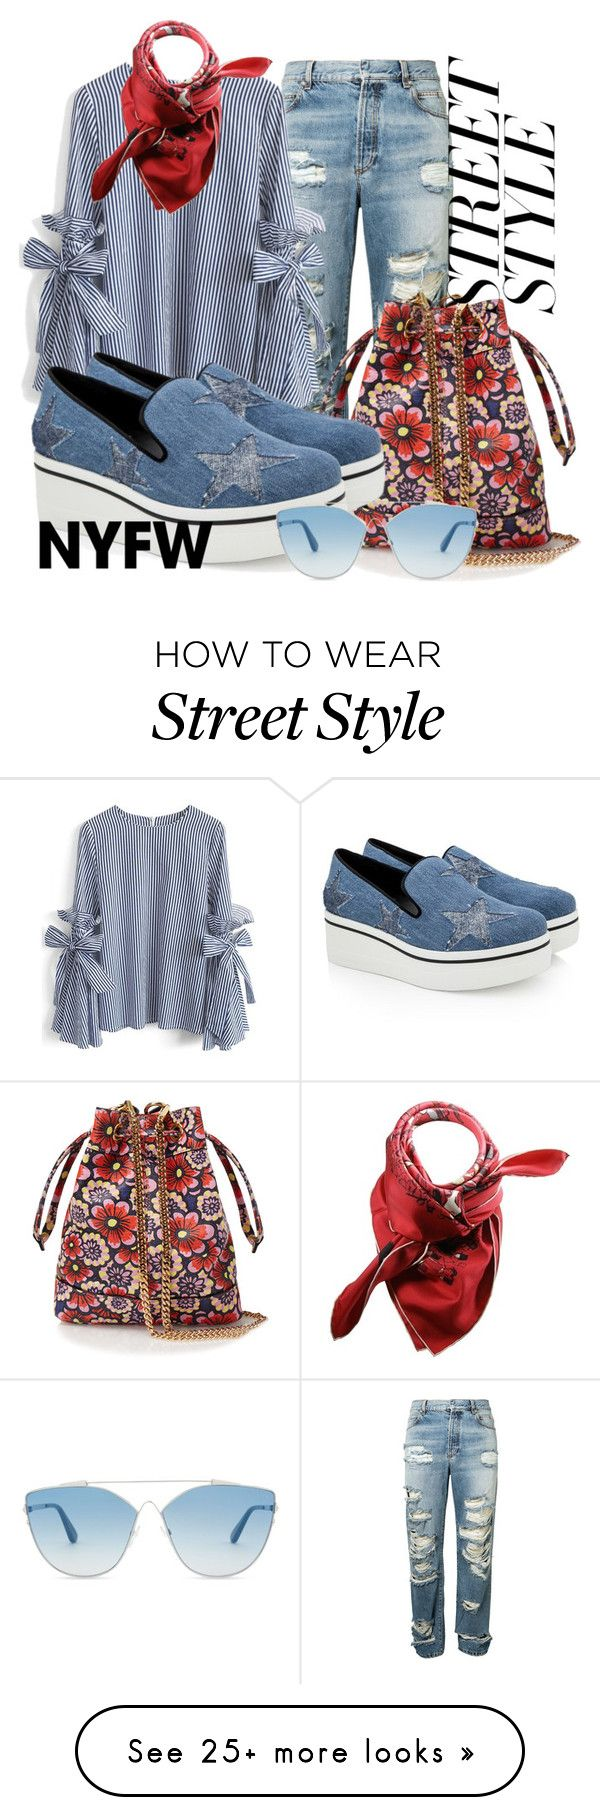 """Street style"" by alexandrapitol on Polyvore featuring Balmain, Chicwish, House of Holland, STELLA McCARTNEY, Christian Dior, Hermès, contestentry and nyfwstreetstyle"